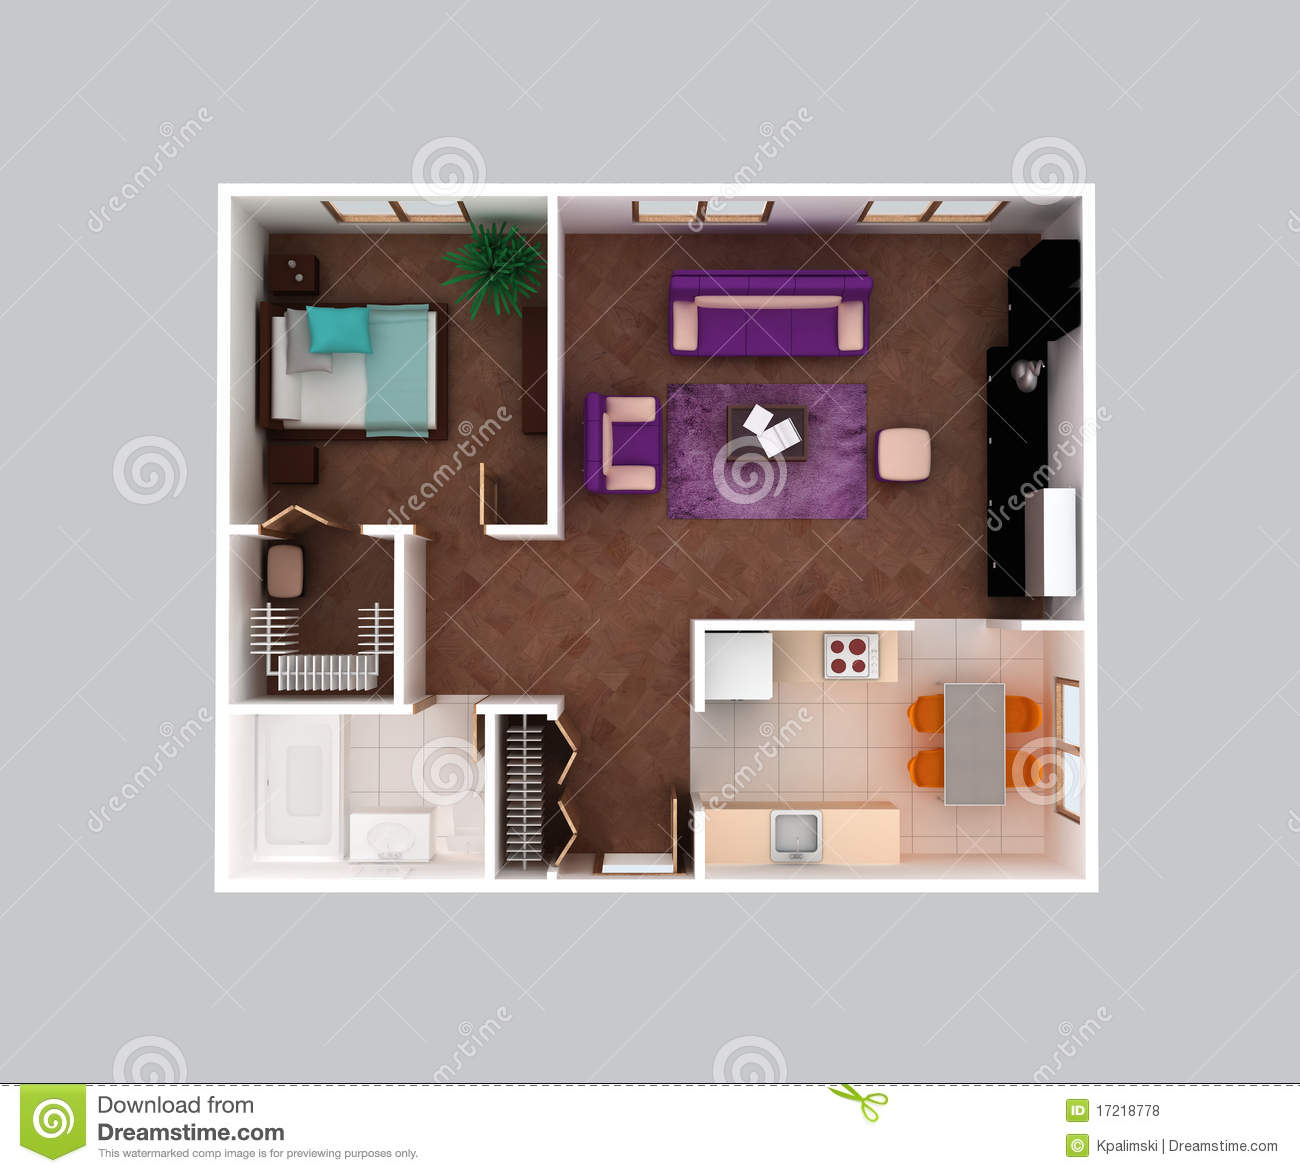 Libre De Droits With Dessiner Plan Appartement